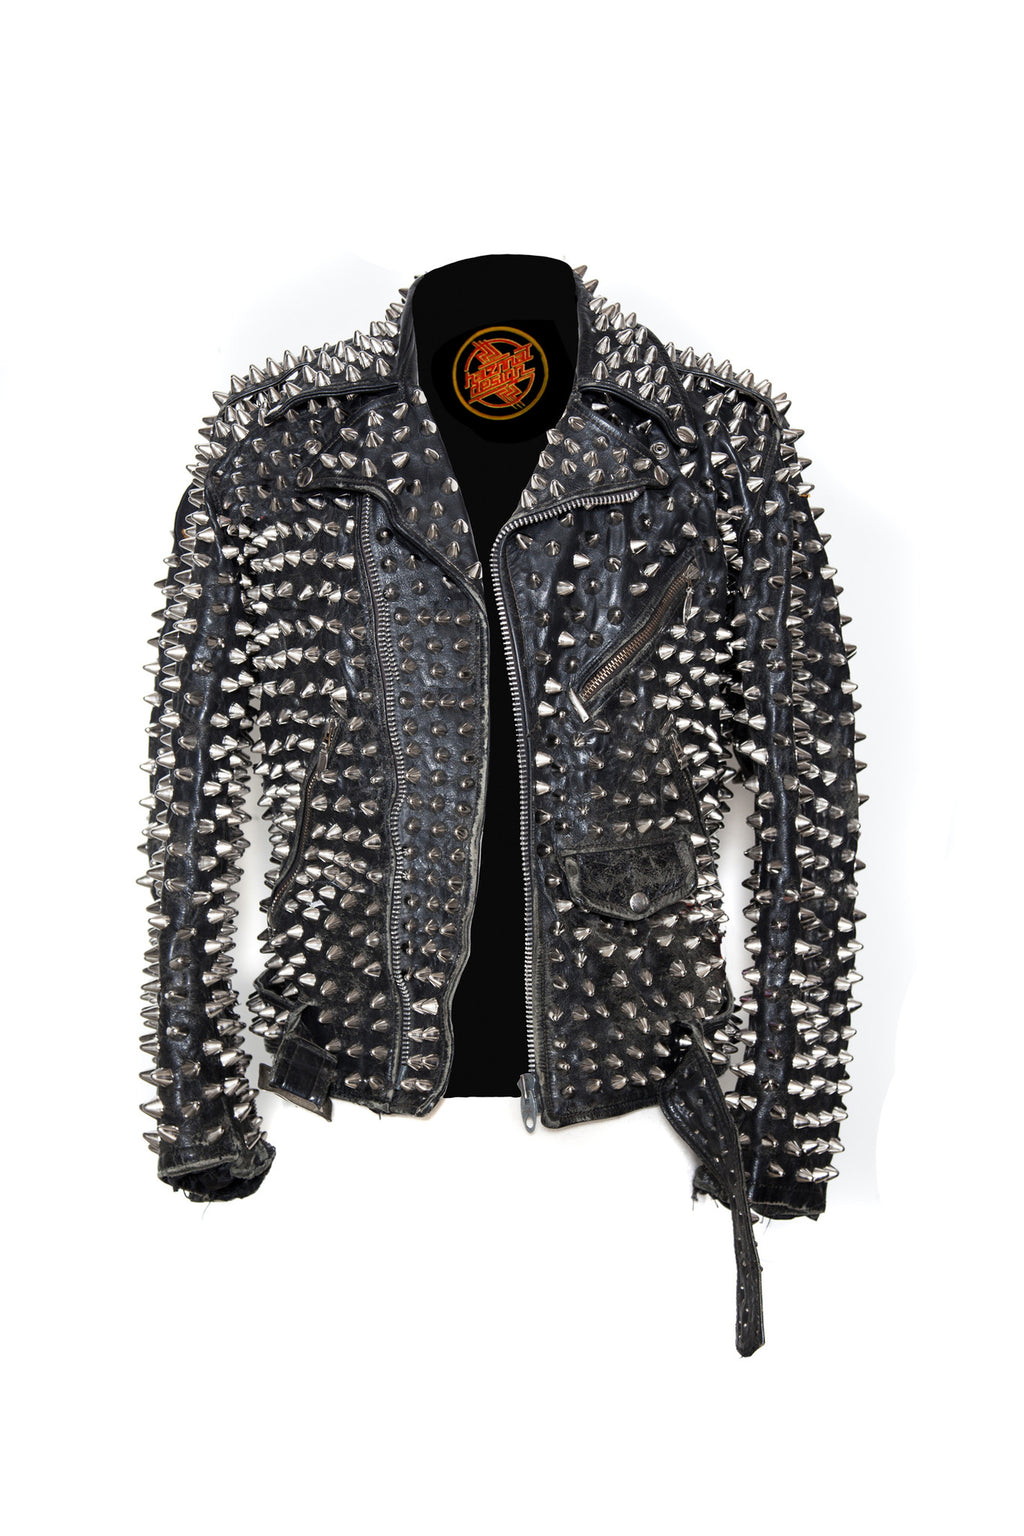 Overkill 2 Studded Leather Jacket